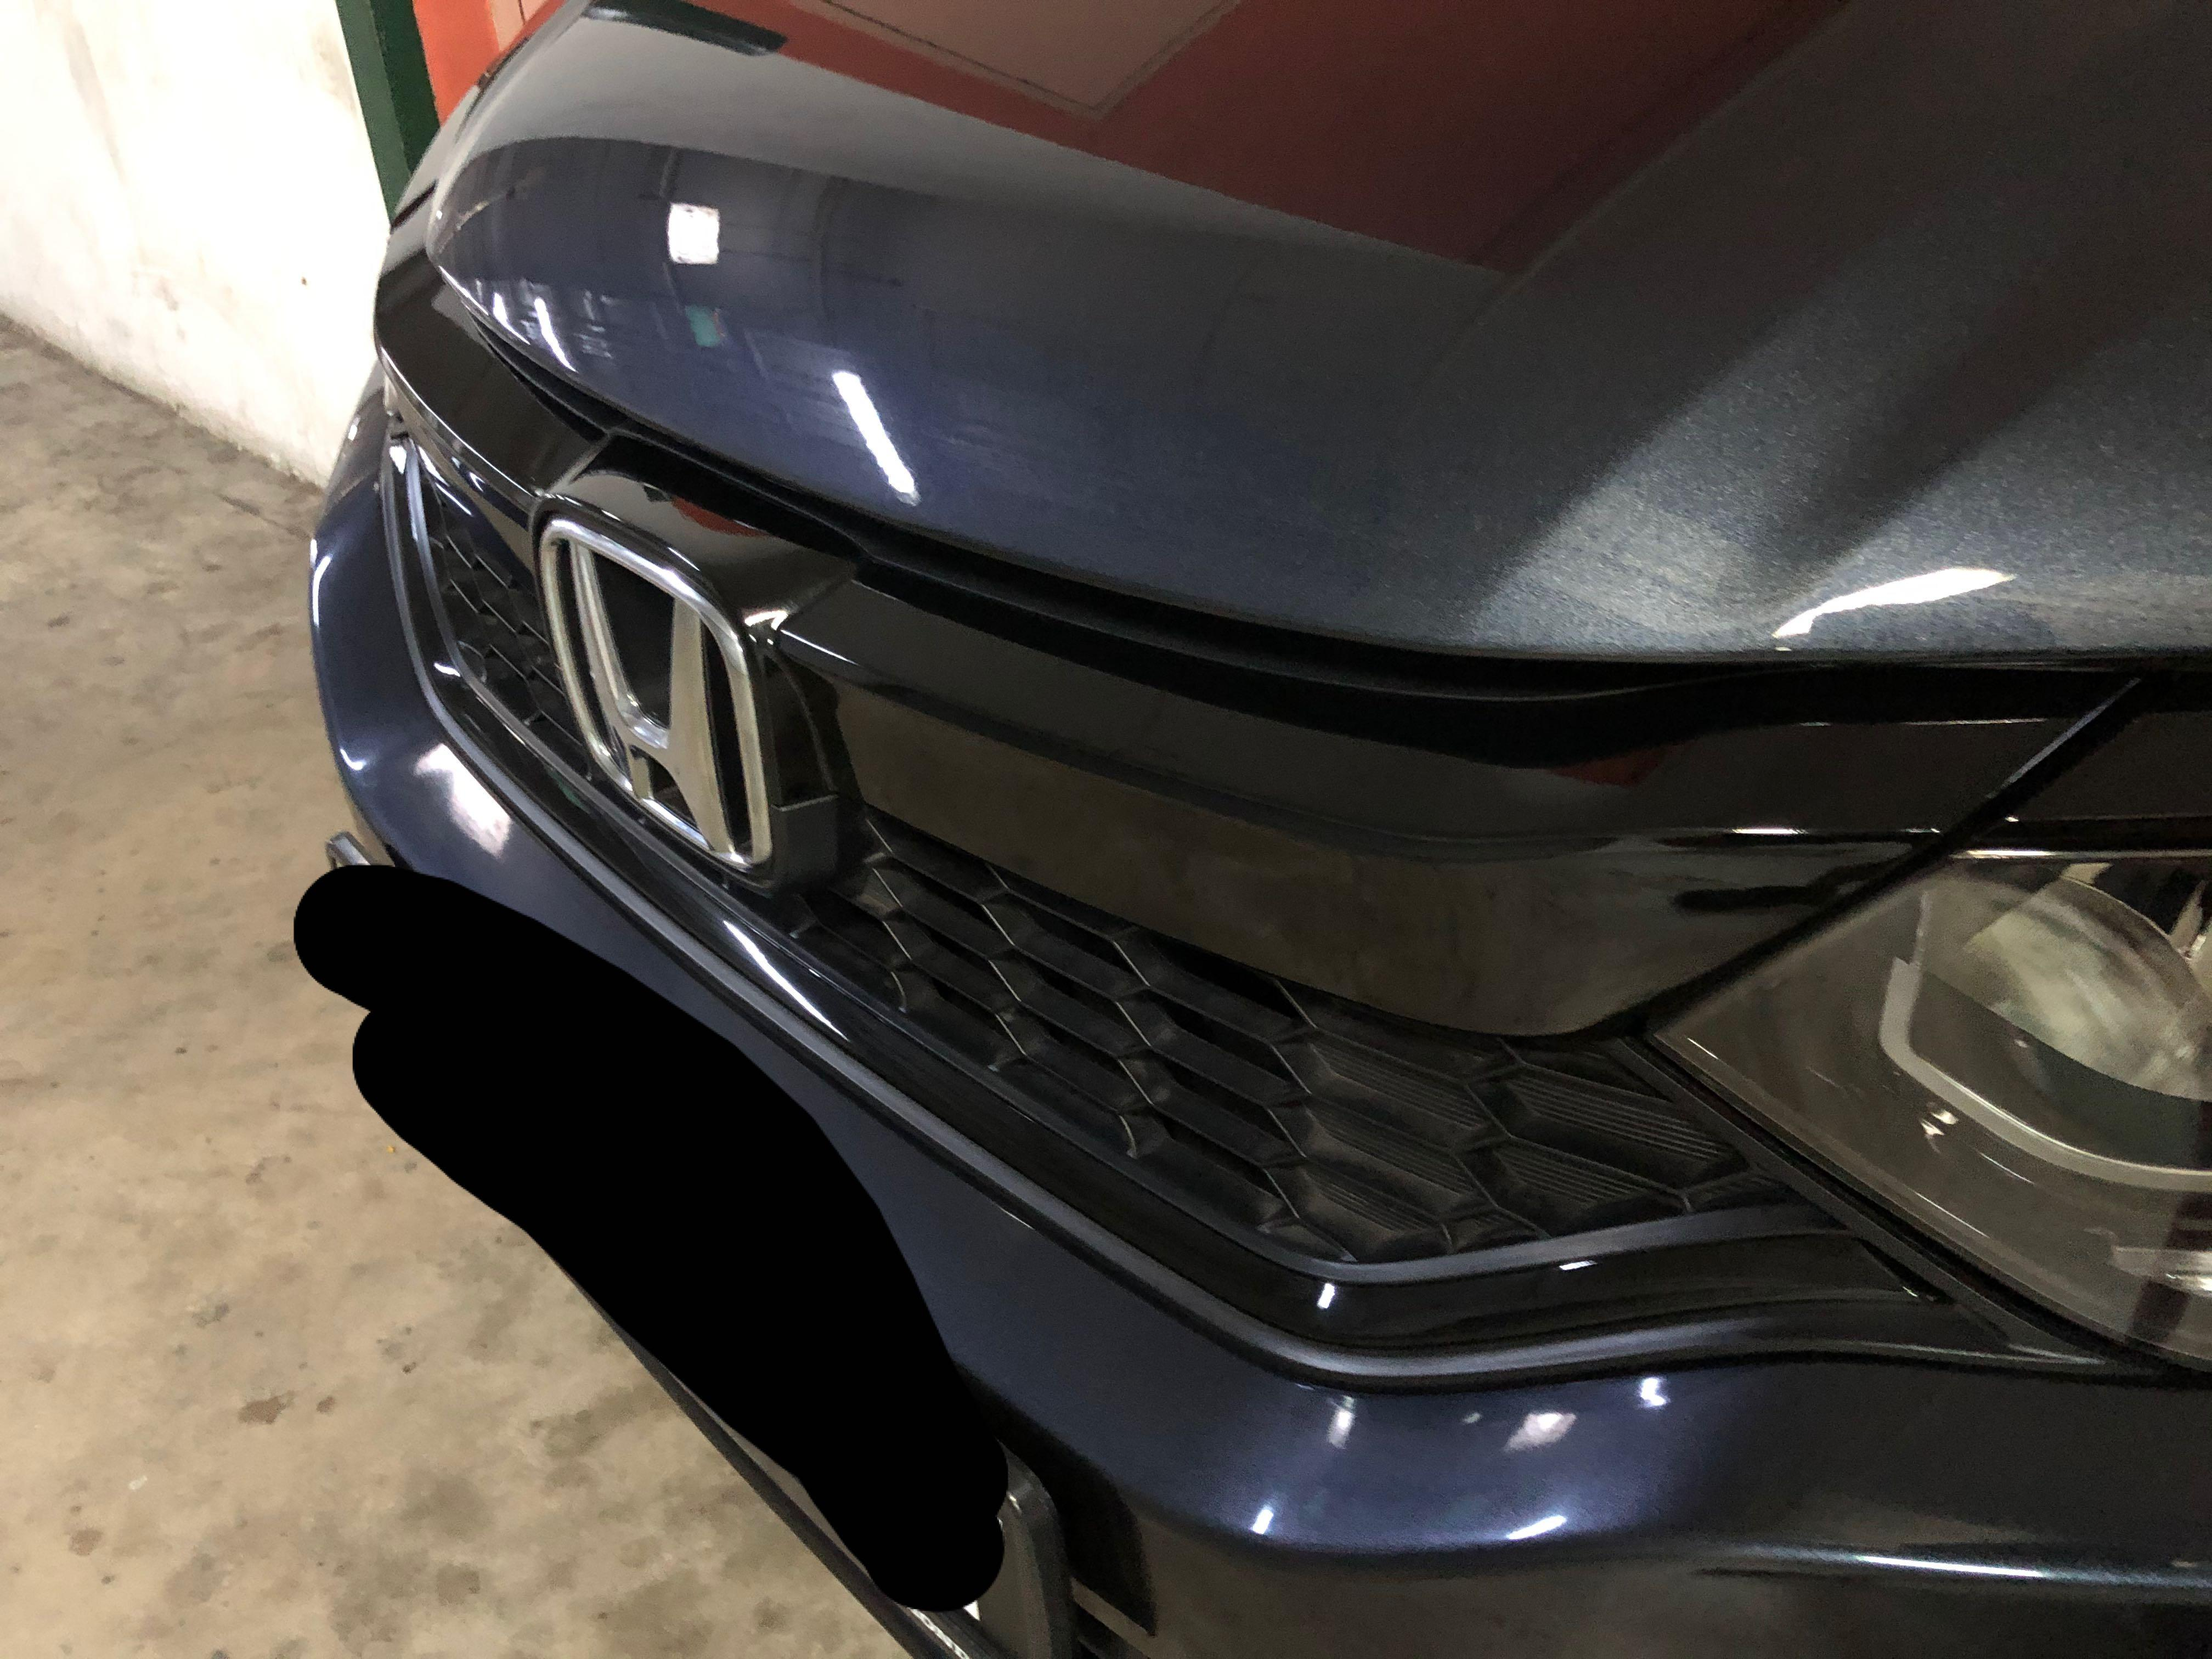 Honda City Front Grill Sticker Wrap Car Accessories Accessories On Carousell